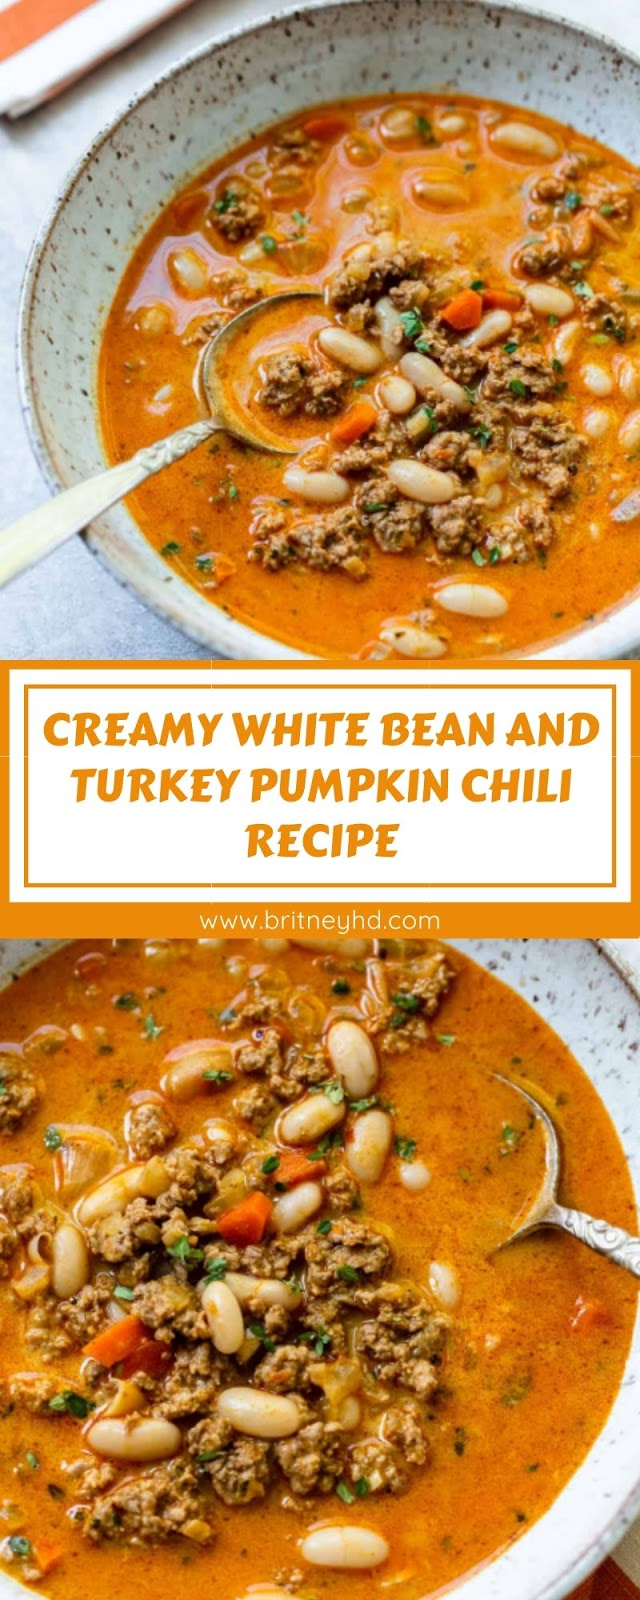 CREAMY WHITE BEAN AND TURKEY PUMPKIN CHILI RECIPE